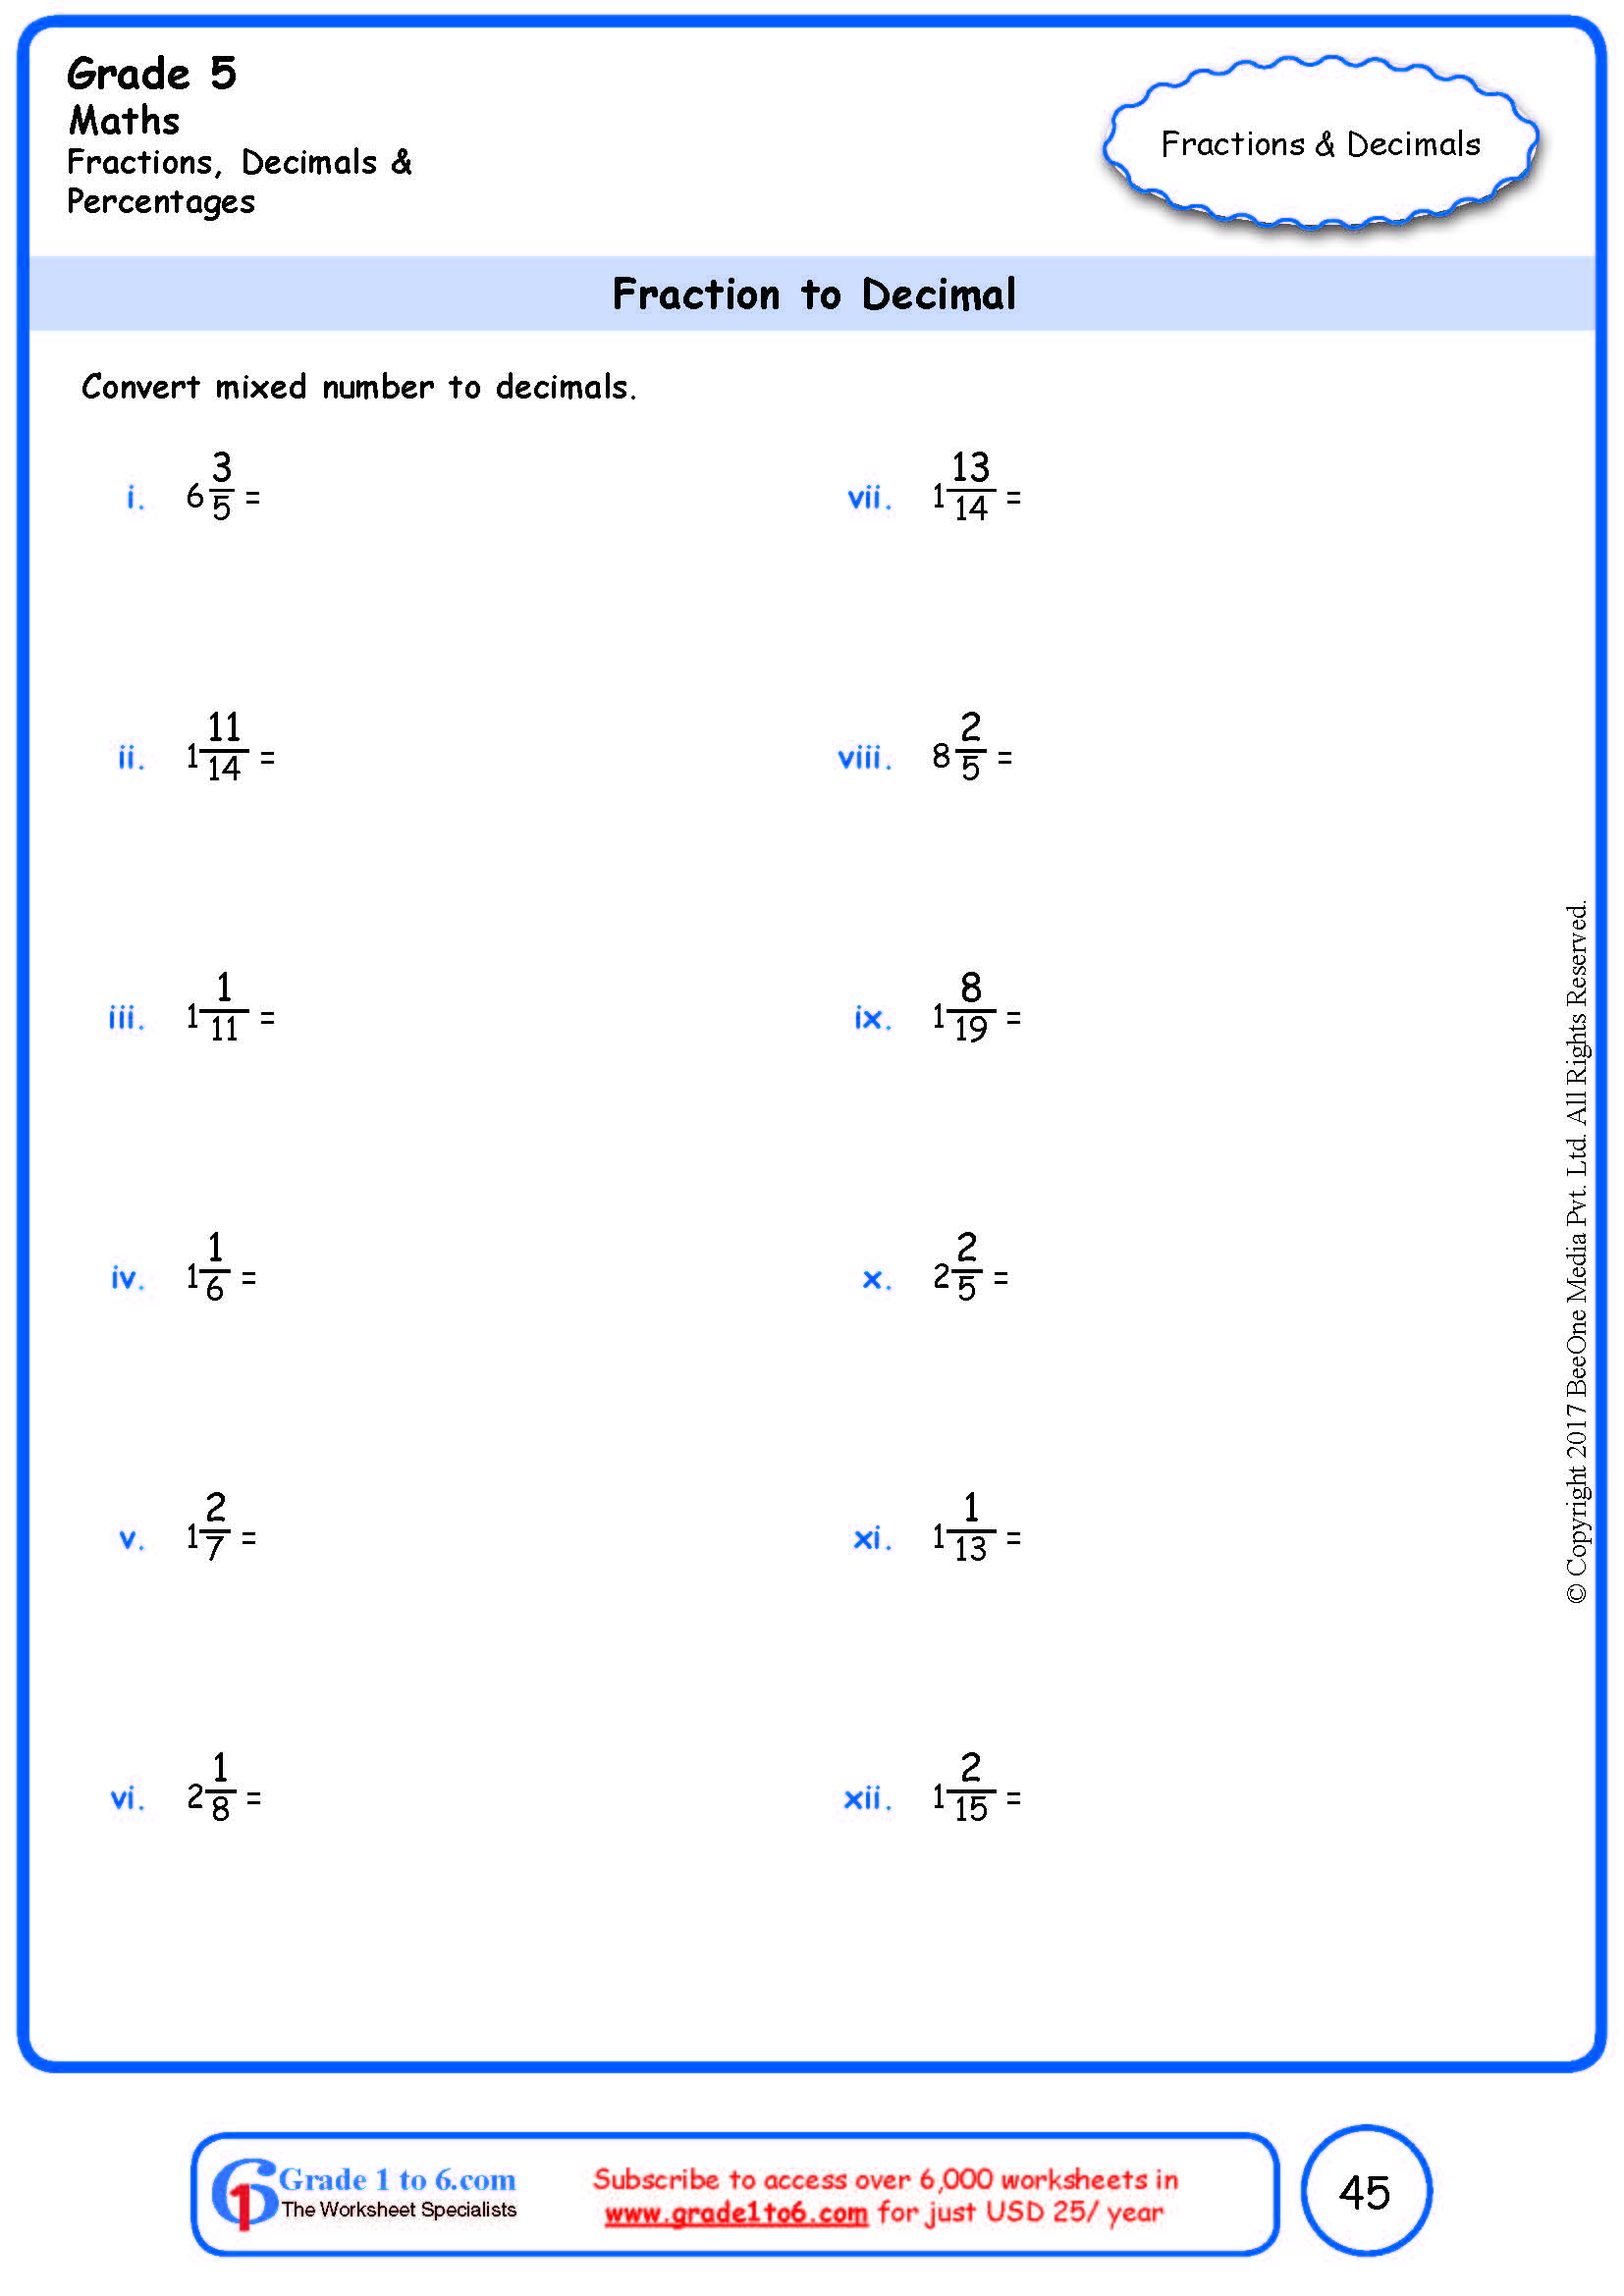 hight resolution of Grade 5 Fraction to Decimal Conversion Worksheets www.grade1to6.com